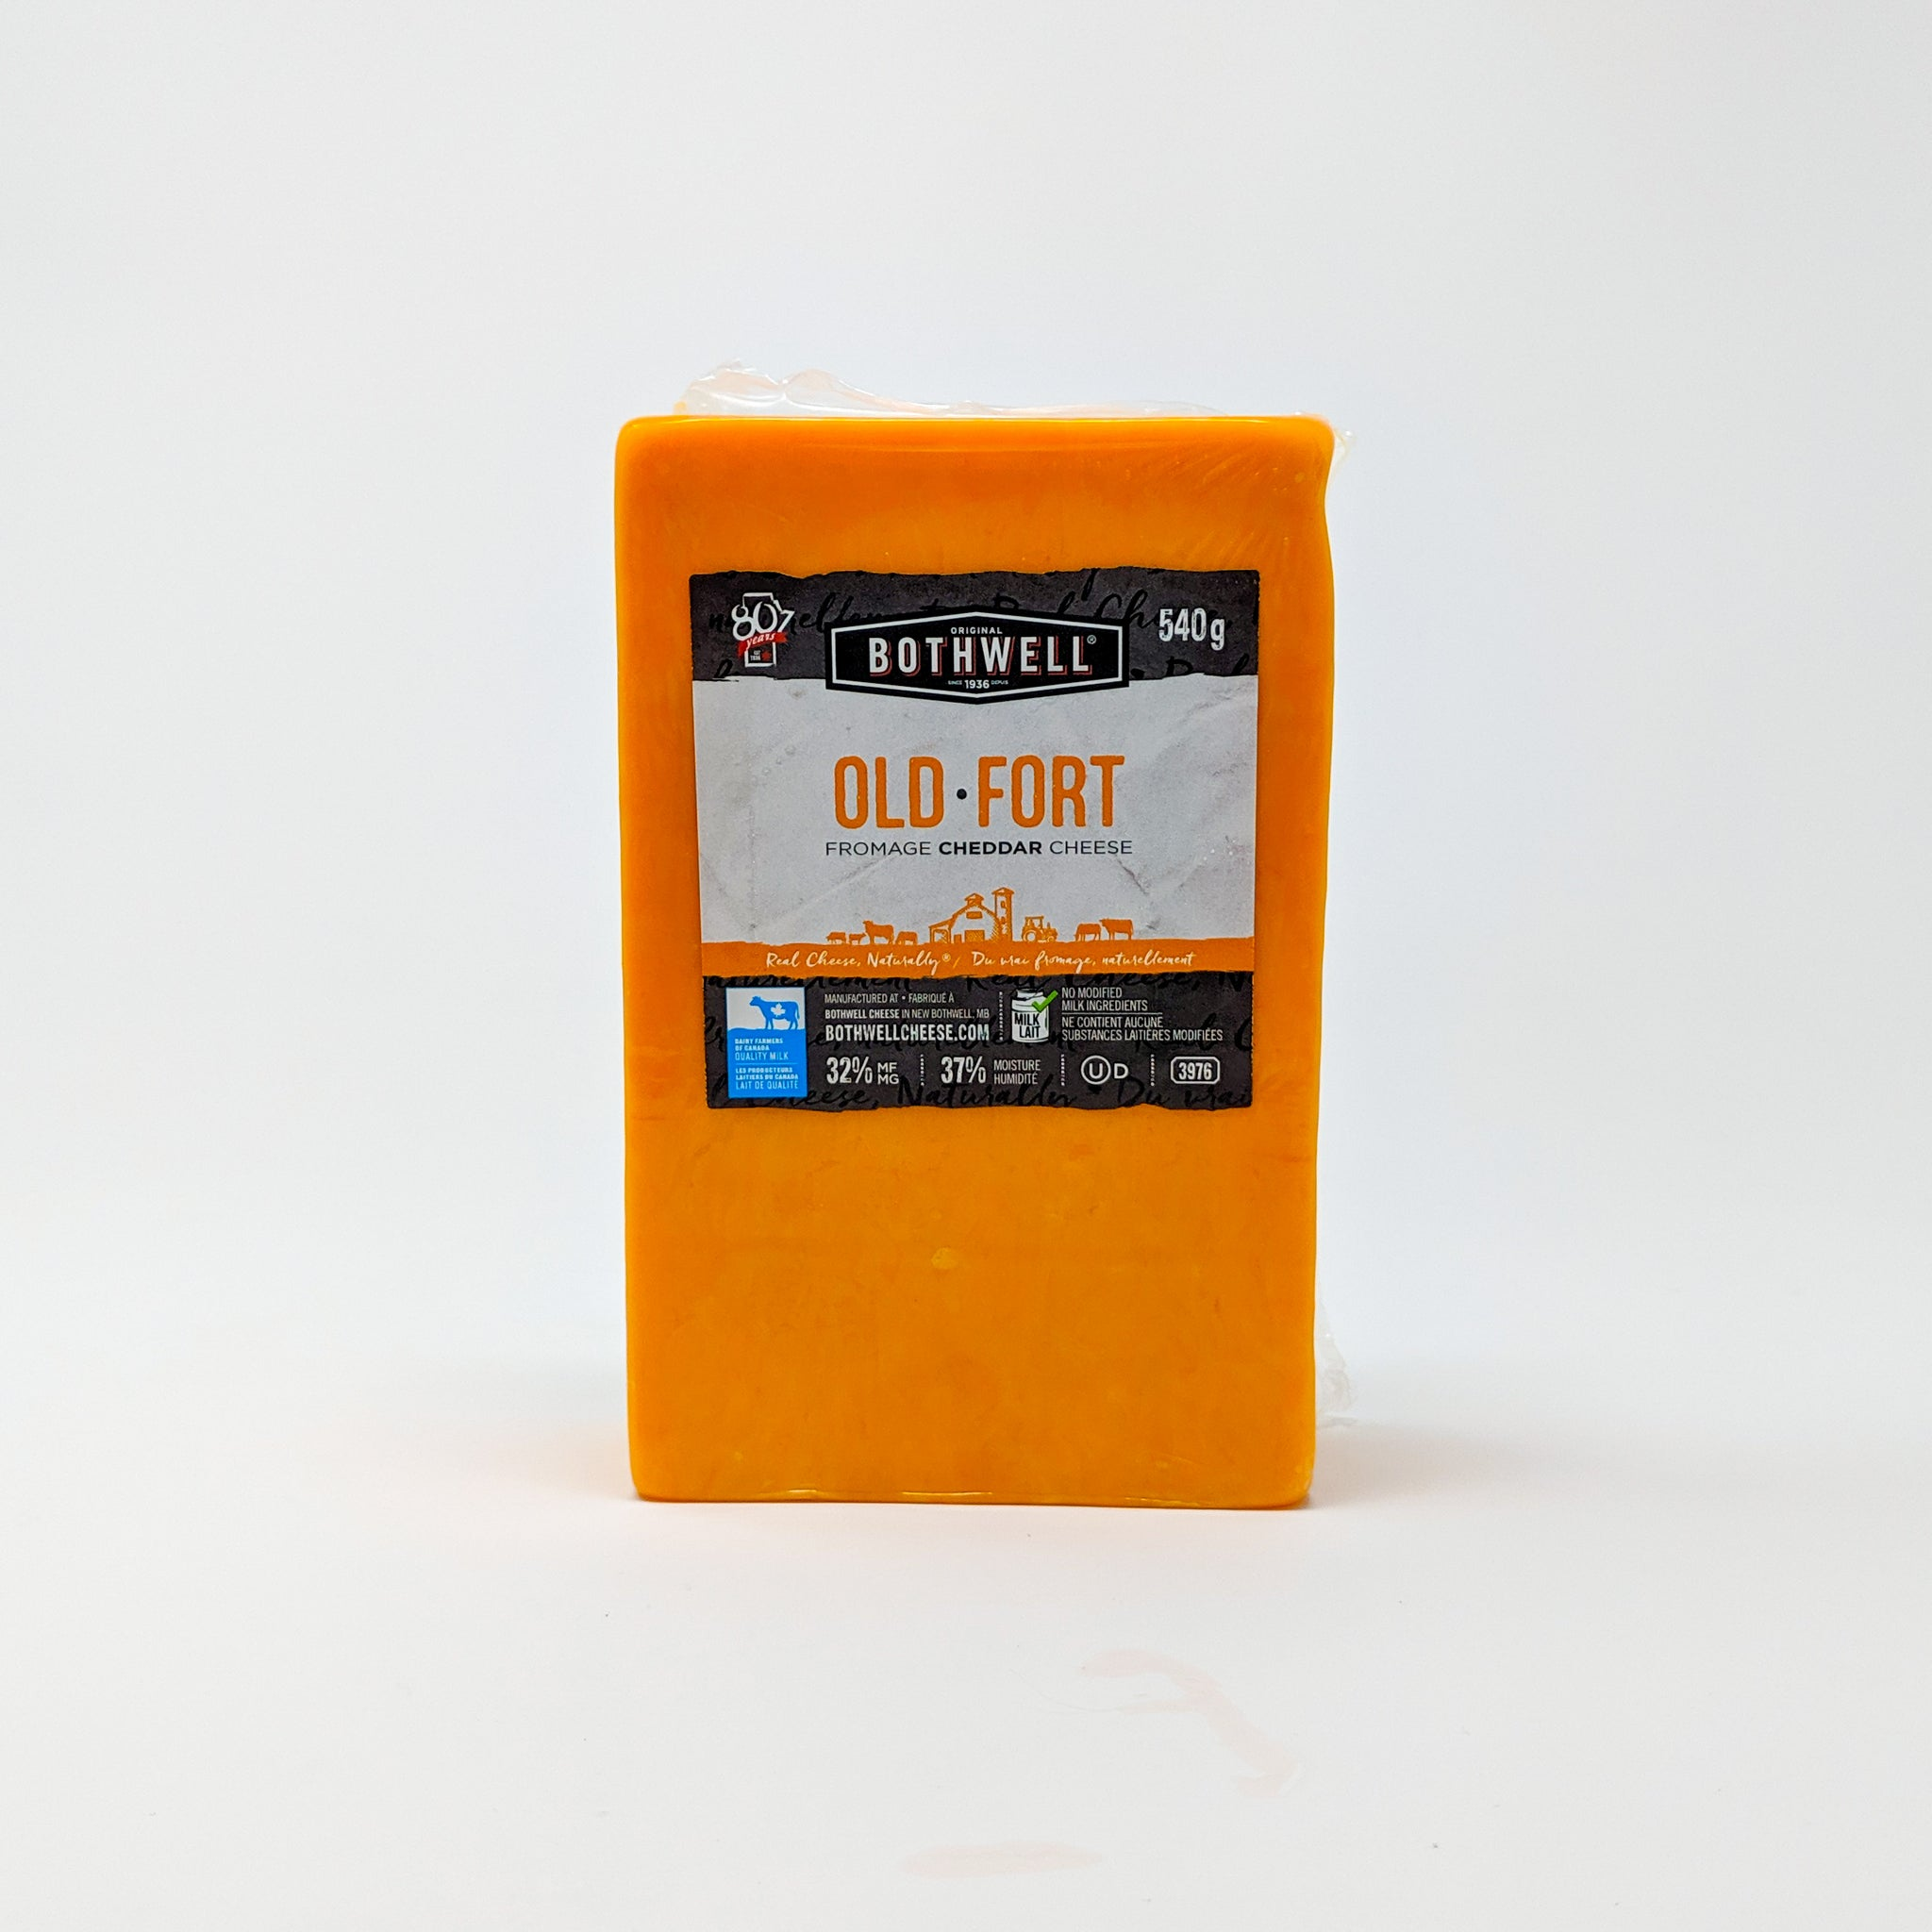 Old Cheddar 540g - Bothwell Cheese